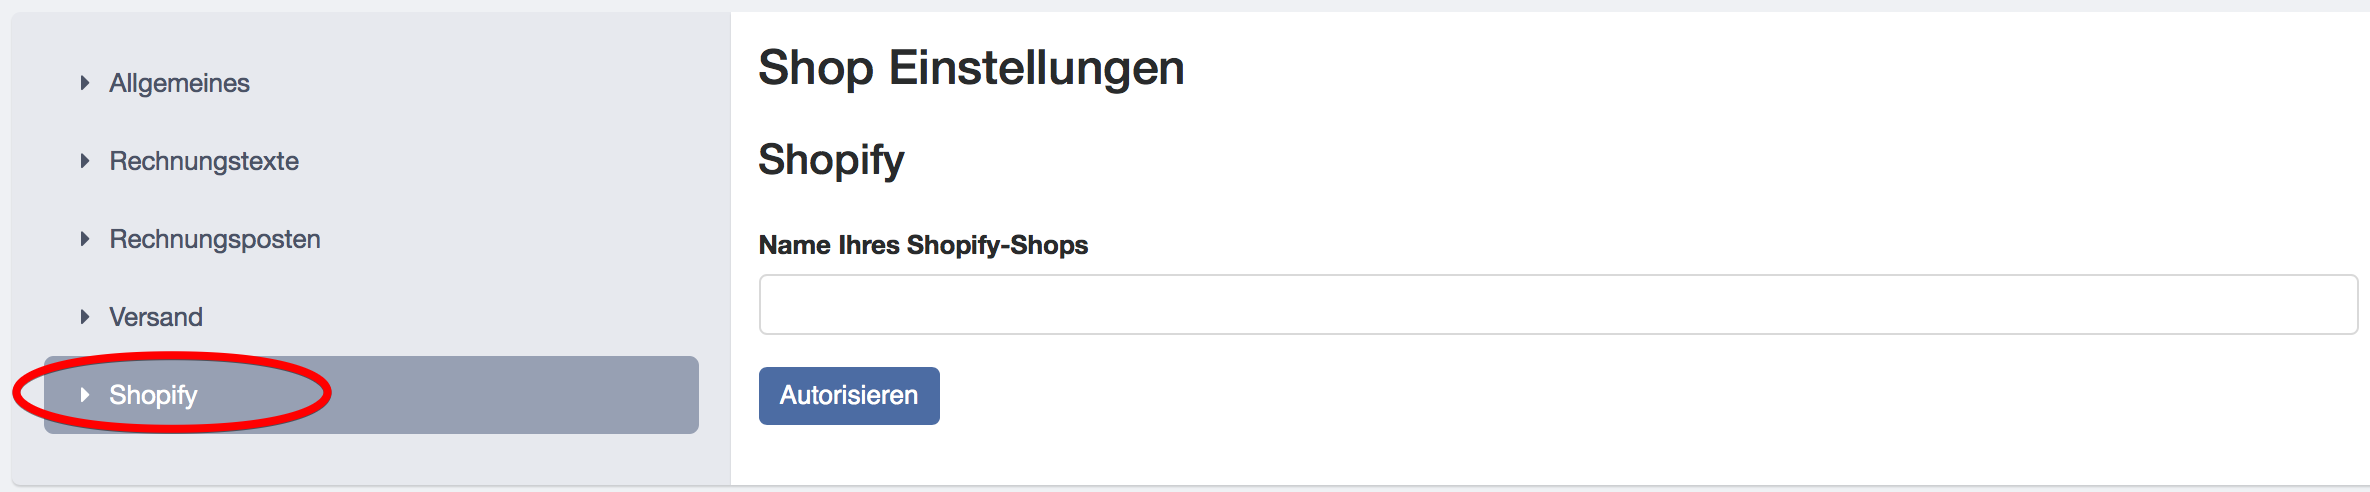 Shopify_aufrufen.png